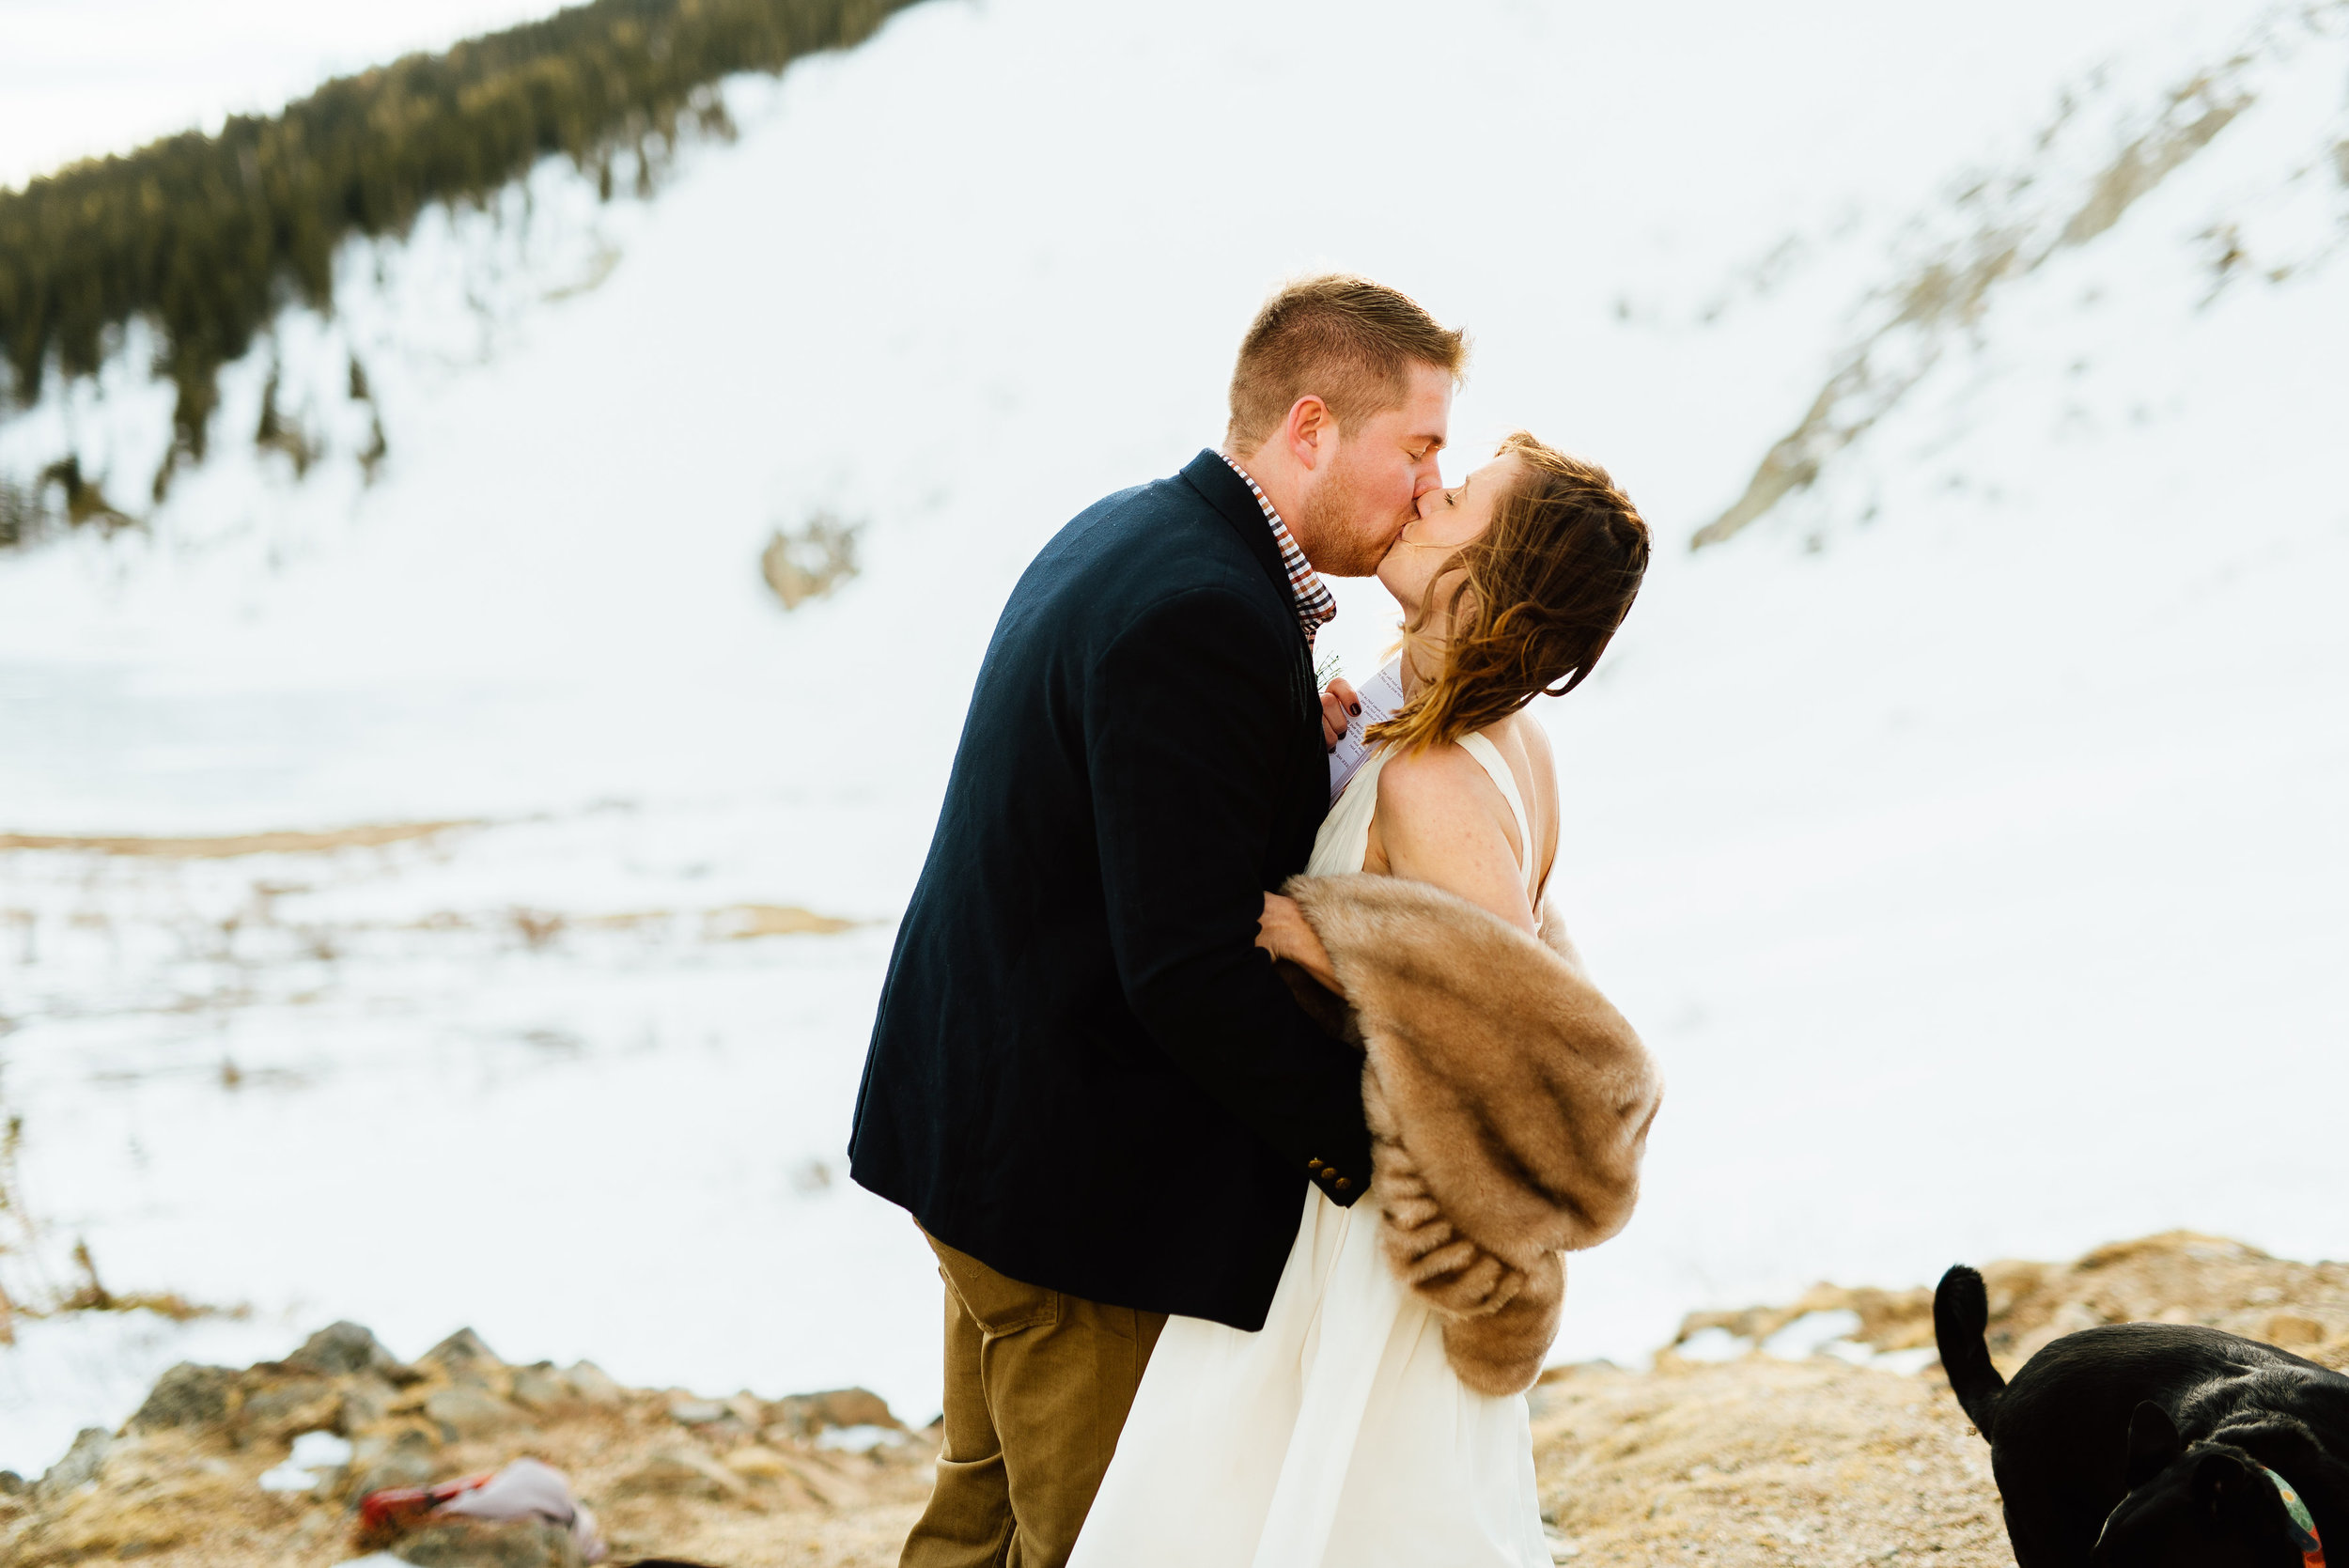 """They said """"I do""""! Congratulations to Kelsie and Tyler on their wedding. They couldn't have had a more beautiful location than to hike up to their ceremony spot at Saint Mary's Glacier in the Rocky Mountains.